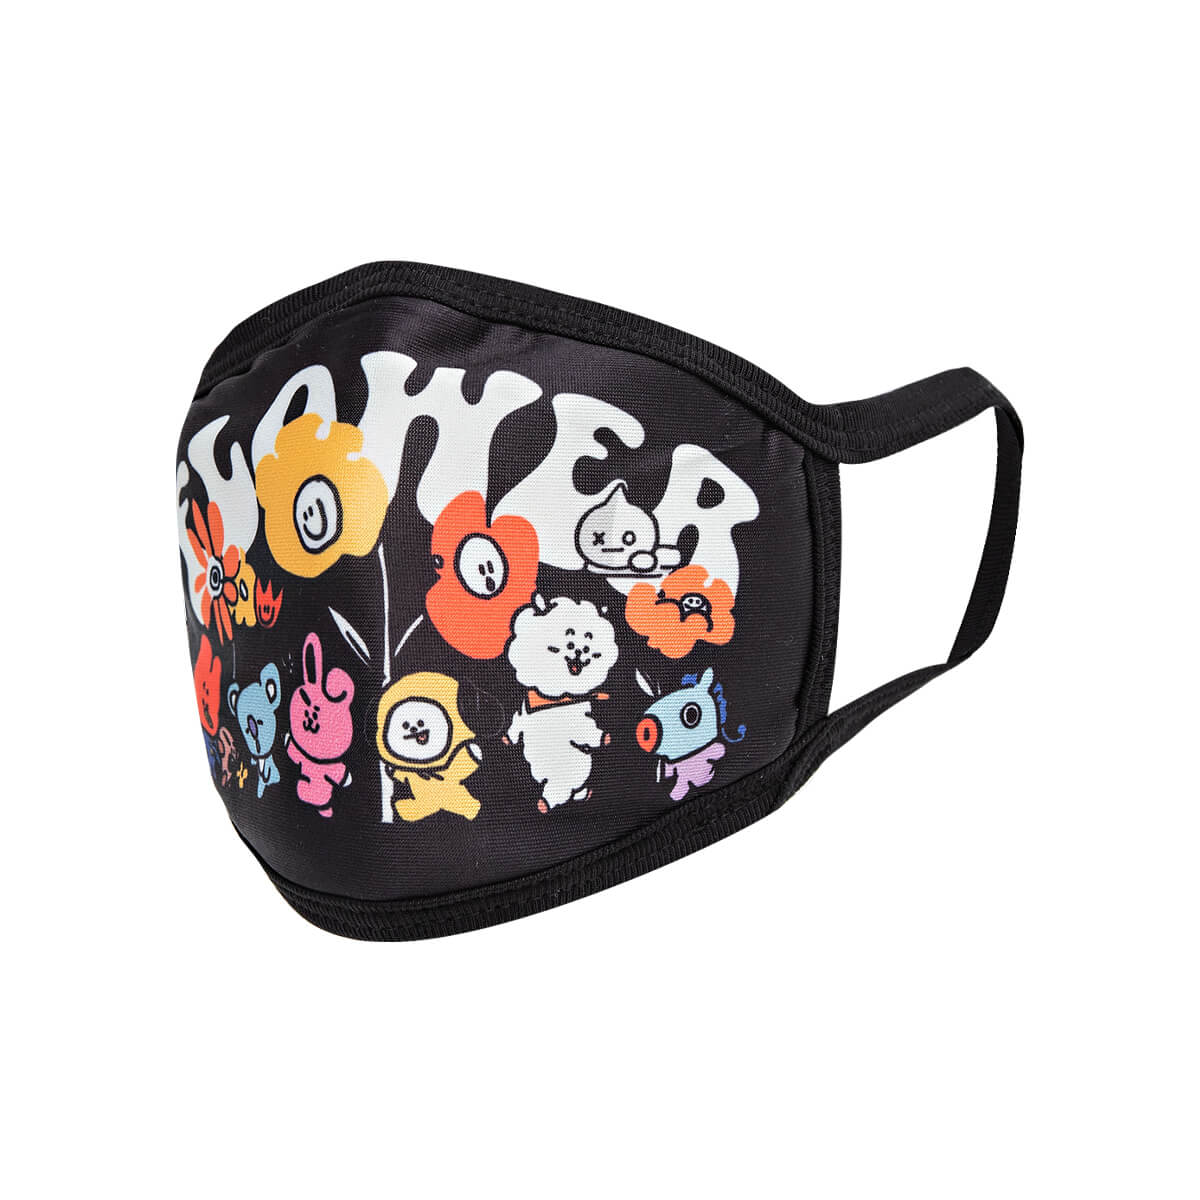 BT21 FLOWER Fashion Mask - Black